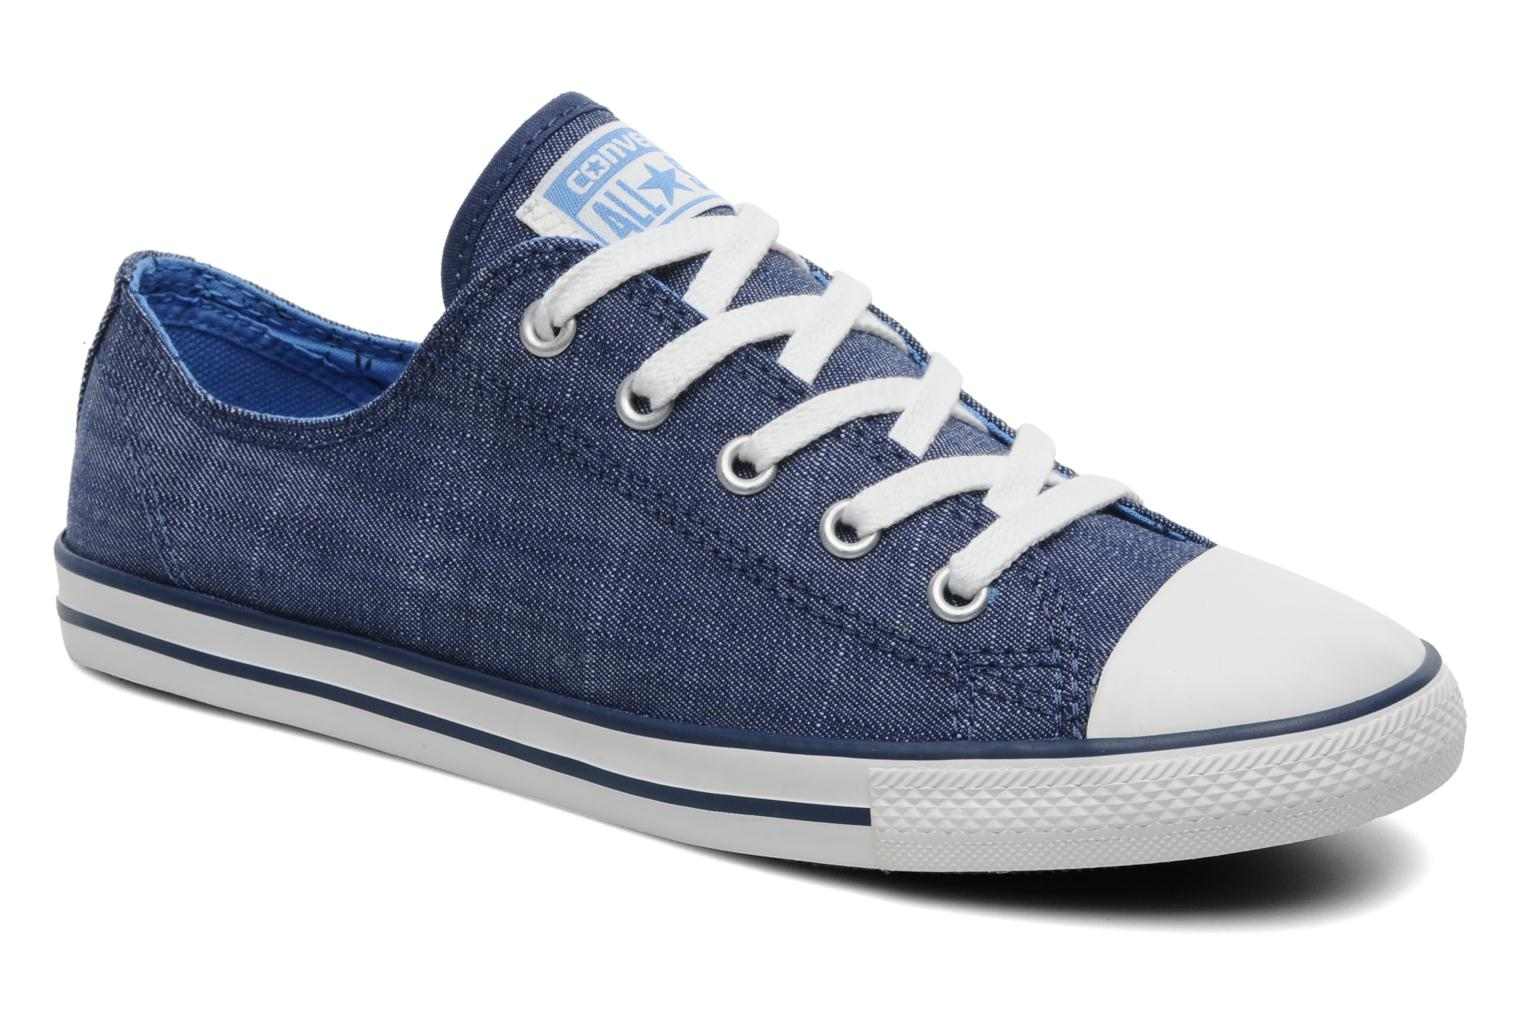 7cfce0795d38 Converse All Star Dainty Denim Ox W (Blue) - Trainers chez Sarenza ...